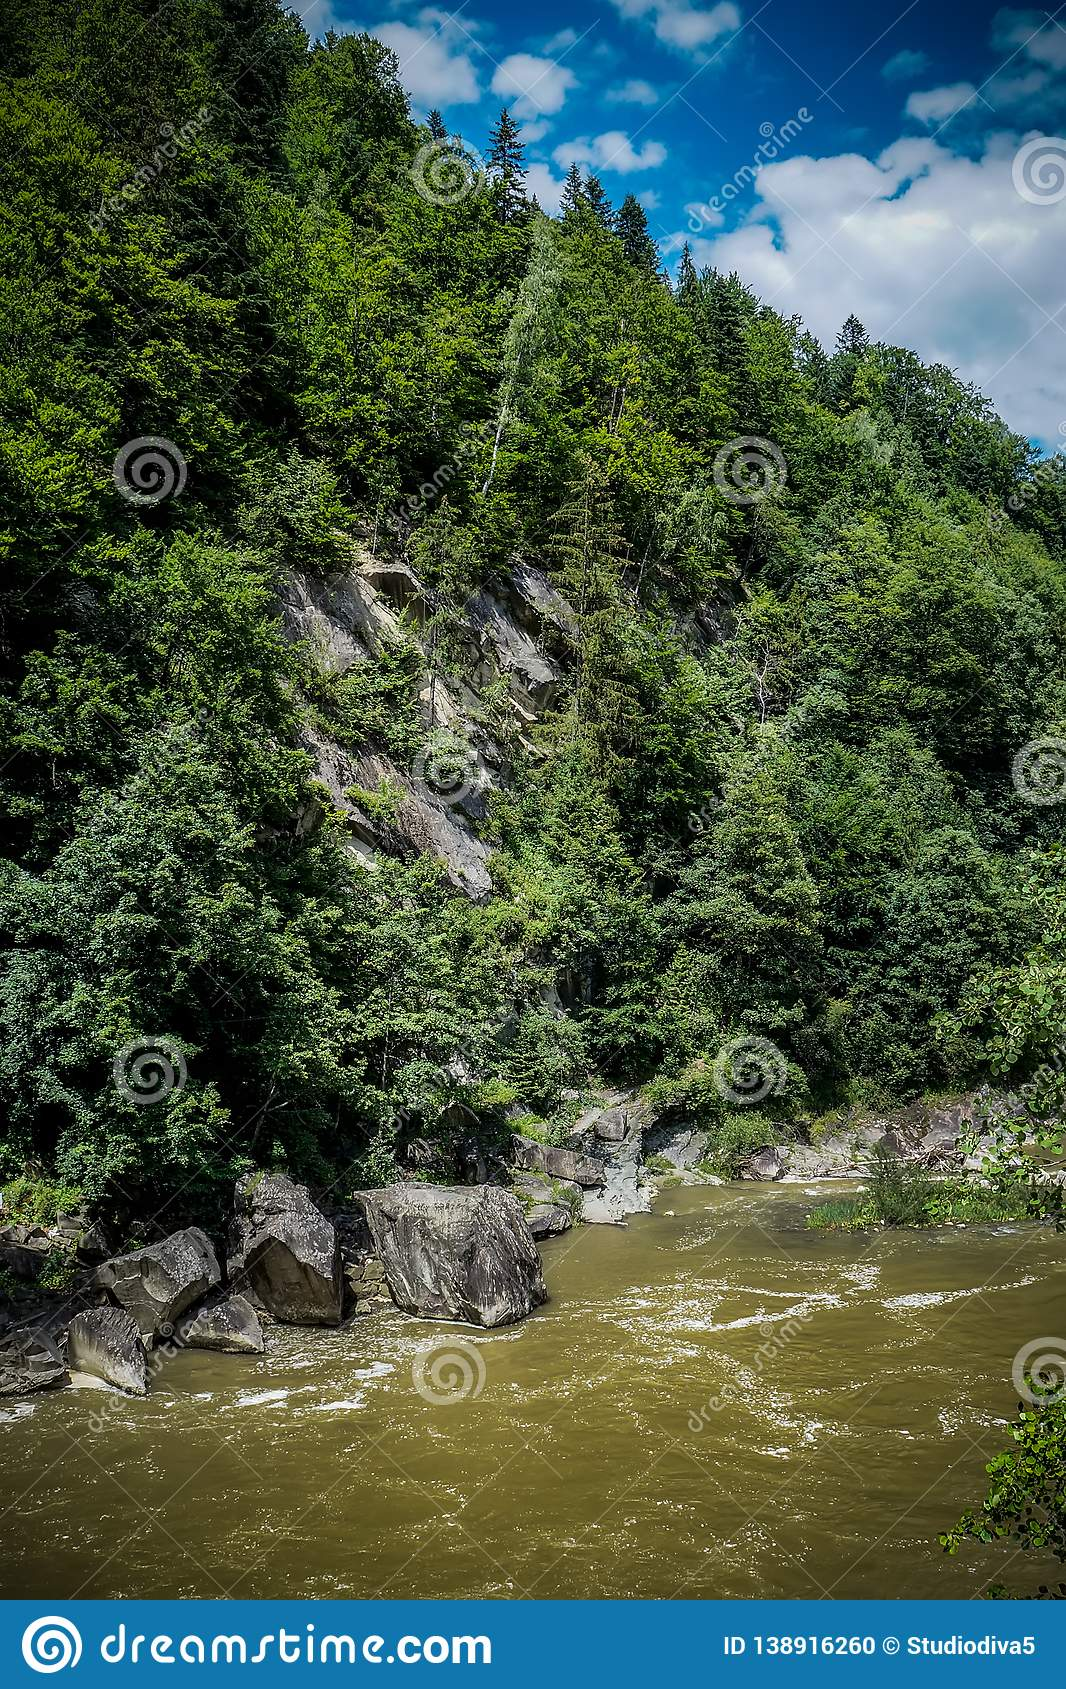 Strong flow and boiling of water in mountain river with splashes. Fast stream in the Carpathians, Ukraine. Stones in a mountain